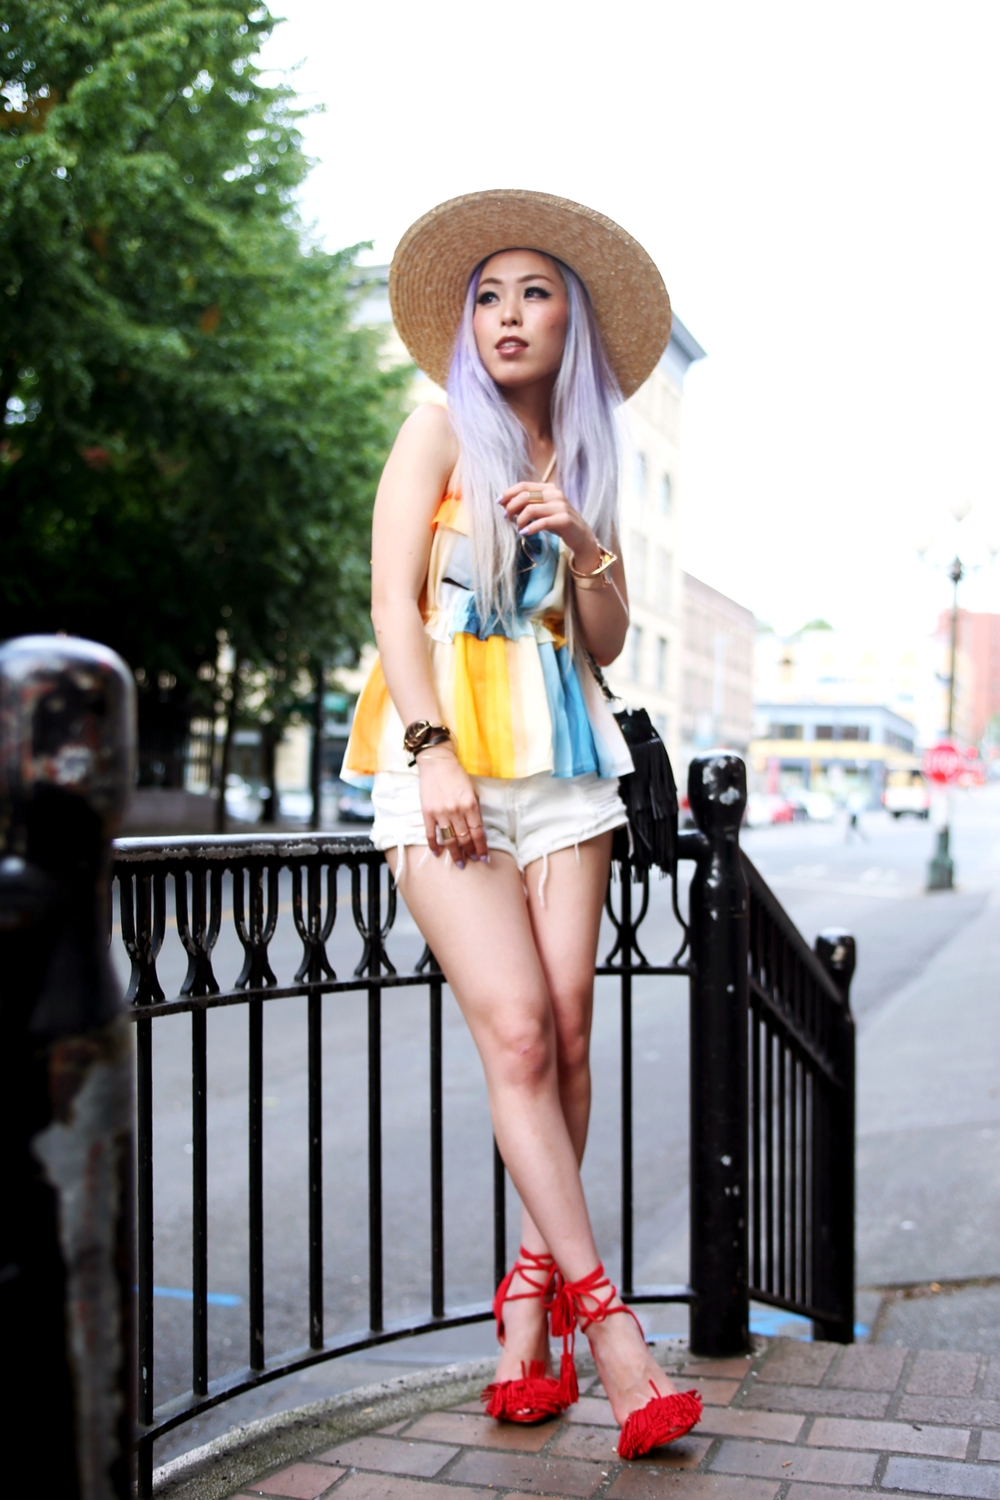 Lack Of Color The Spencer Wide Brimmed Hat_H&M chiffon top_Sincerely Jules Stone Cut Off shorts_Fringe Bag_JustFab Red Fringe Sandals_Marc Bale Rose Gold Watch_Lavender Hair_Aikas Love Closet_Seattle Fashion Blogger from Japan